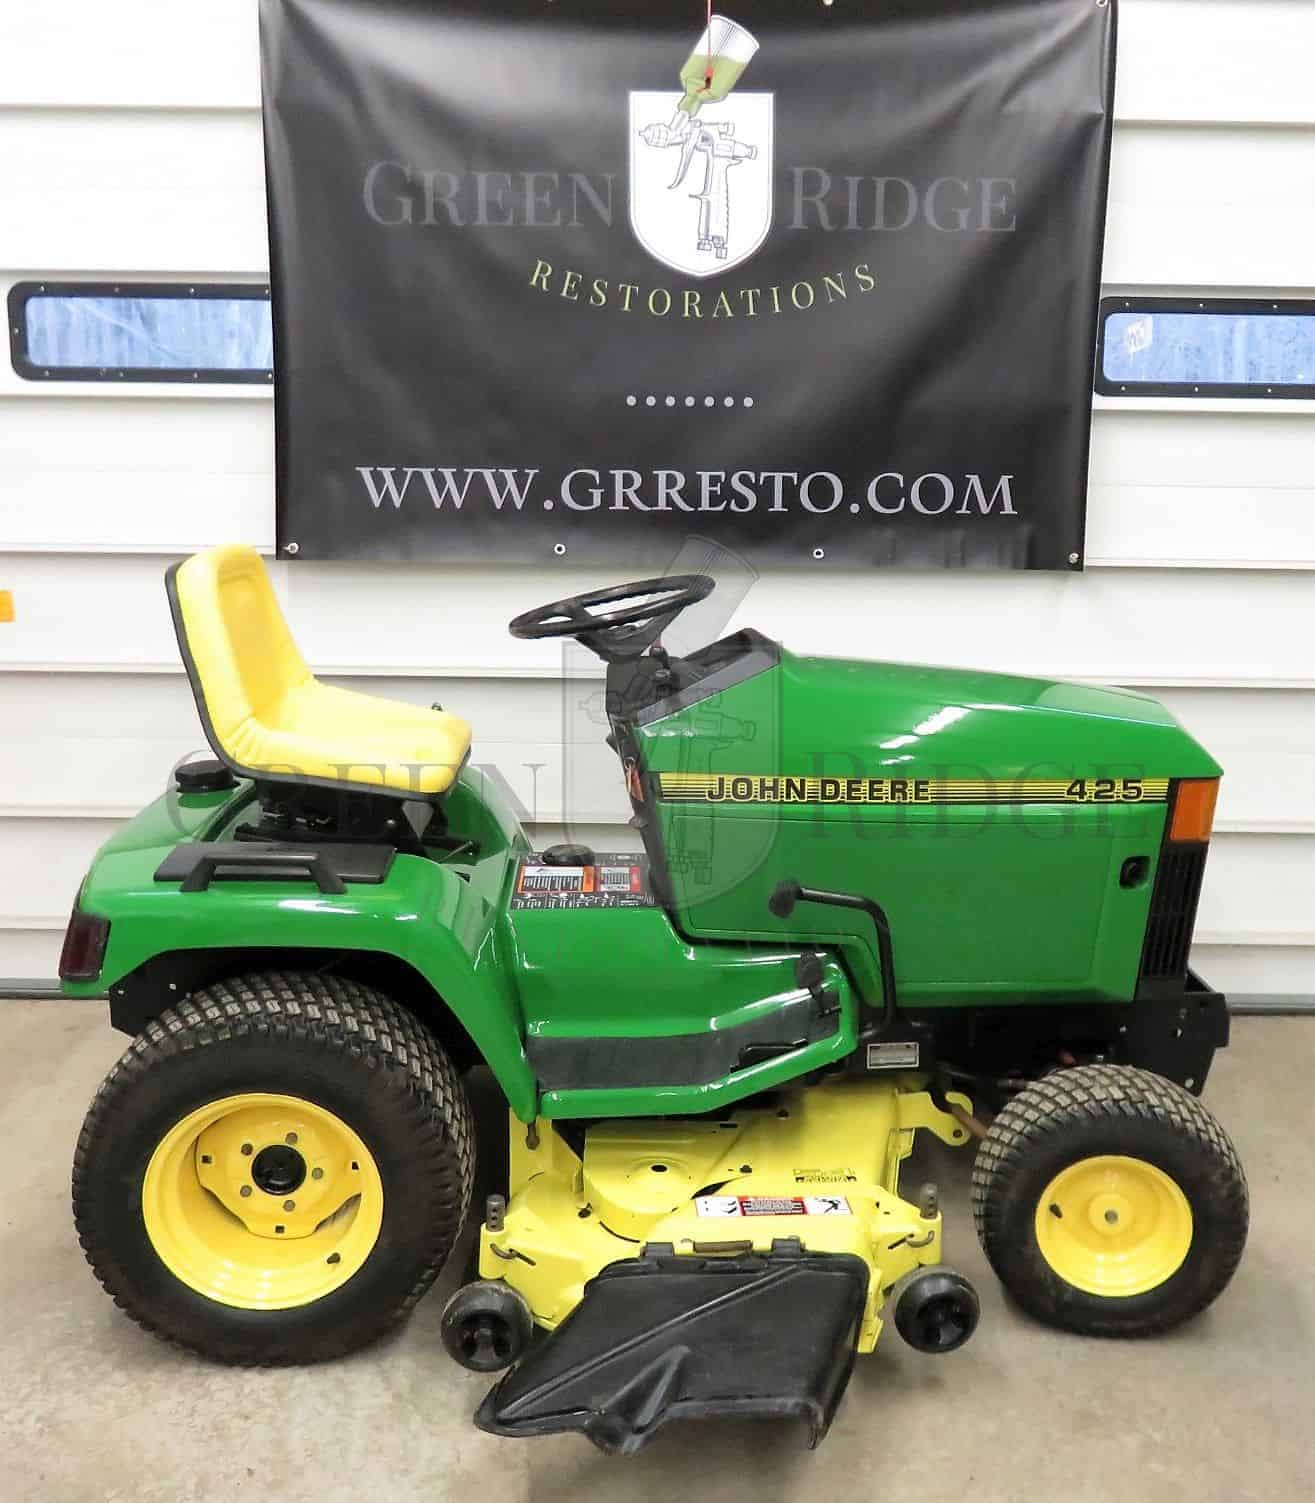 John Deere 425 for sale